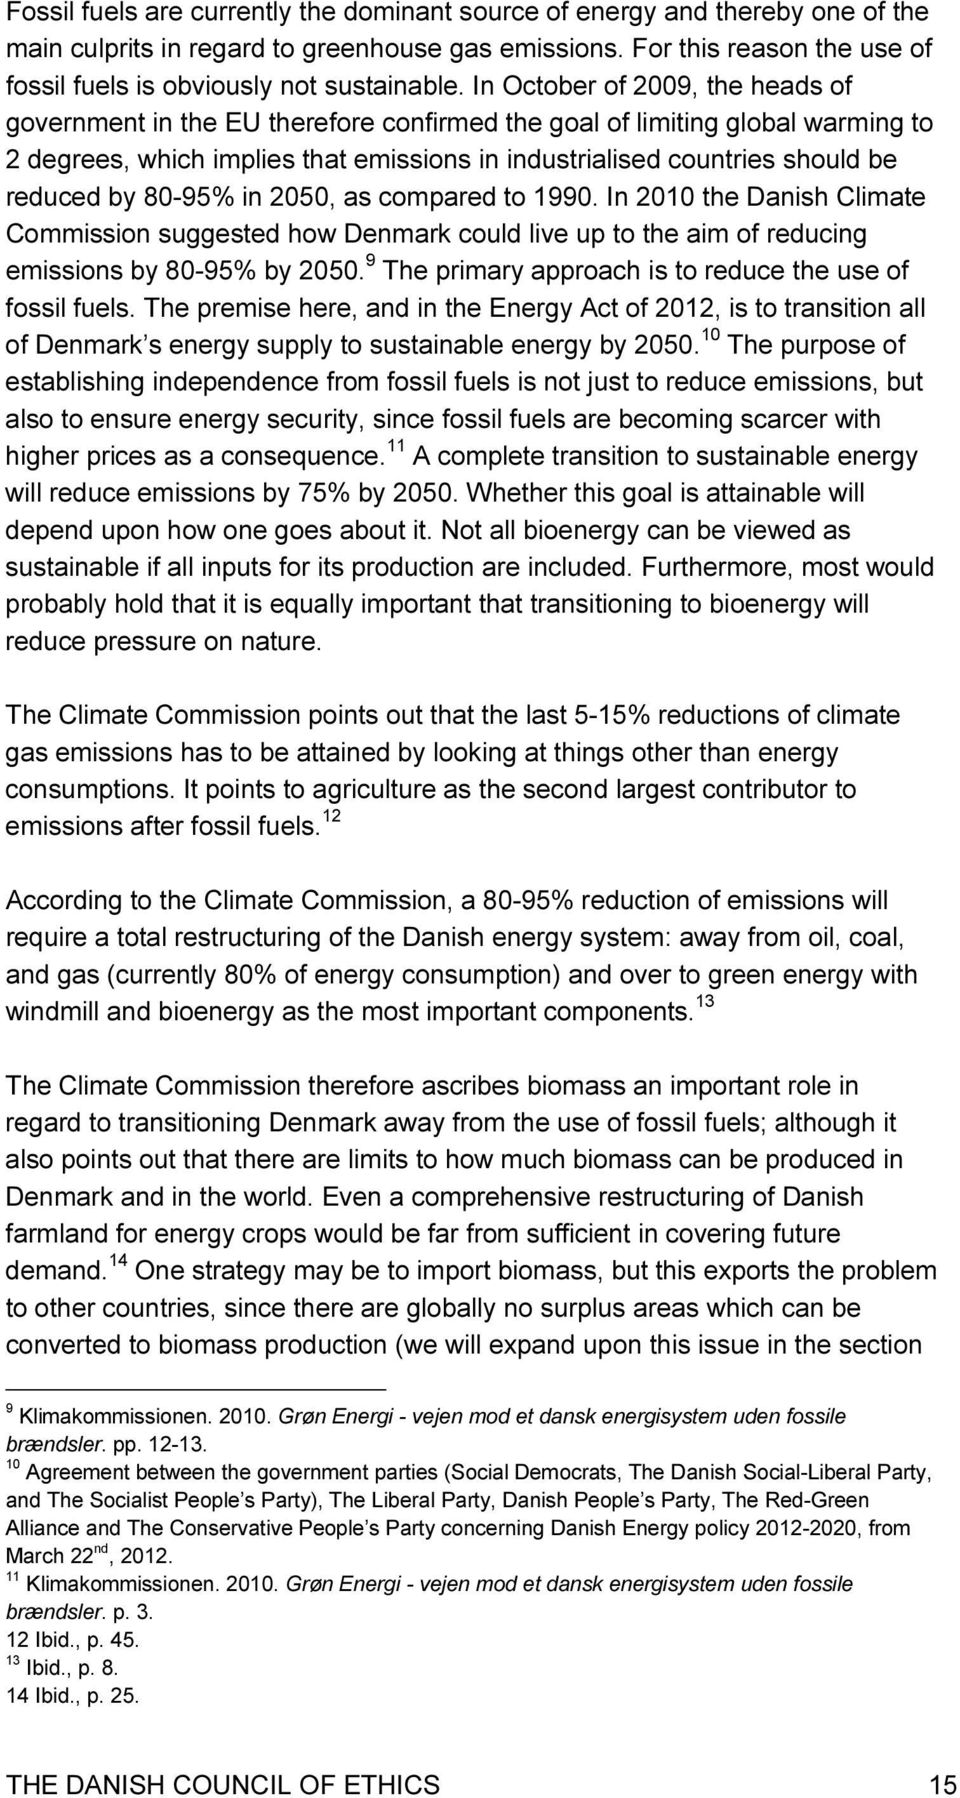 In October of 2009, the heads of government in the EU therefore confirmed the goal of limiting global warming to 2 degrees, which implies that emissions in industrialised countries should be reduced